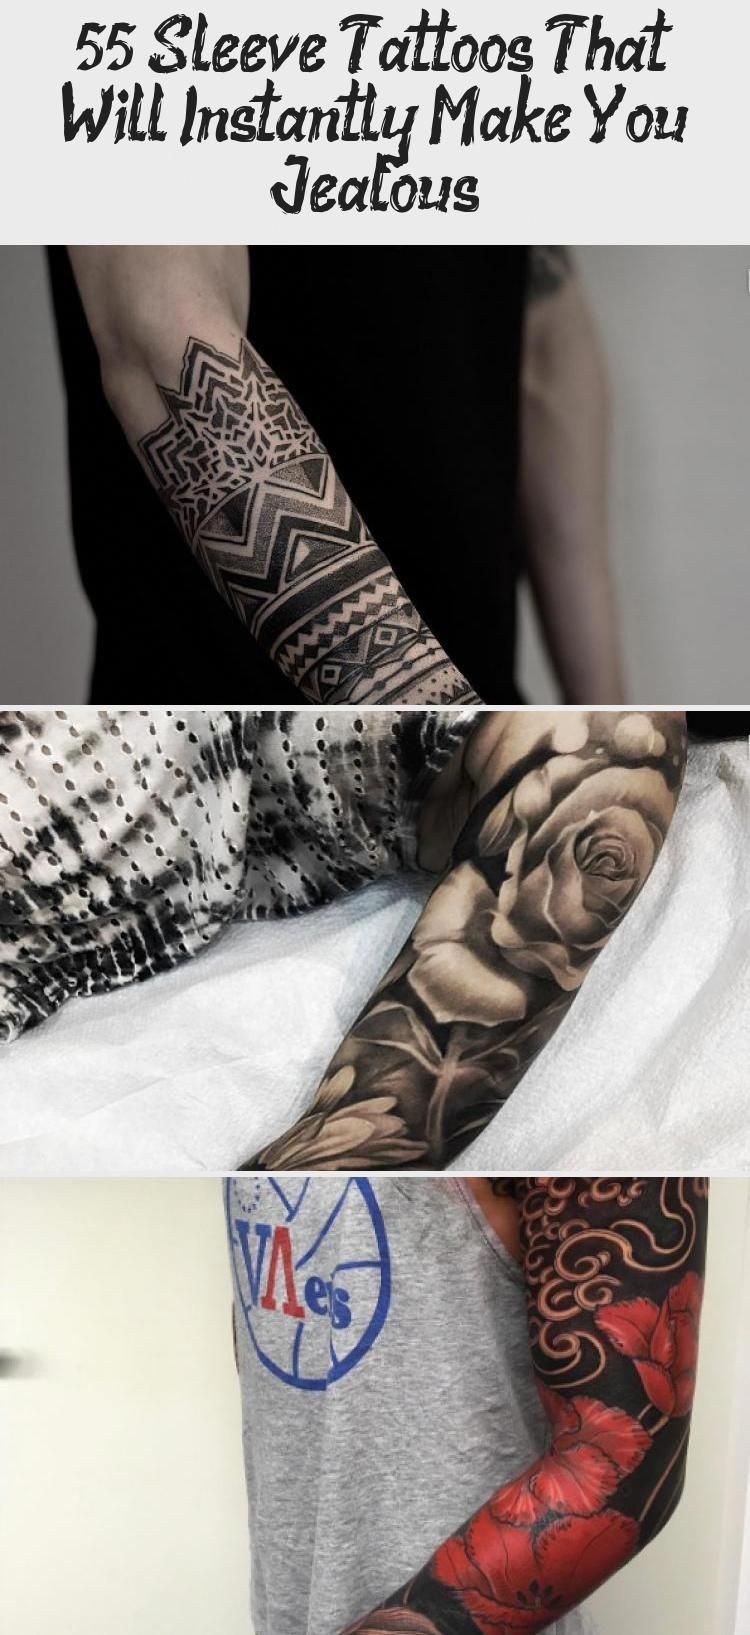 Sleeve Tattoo Design Your Own Fullsleevetattoos Sleeve Tattoos Tattoo Sleeve Designs Tiger Tattoo Sleeve